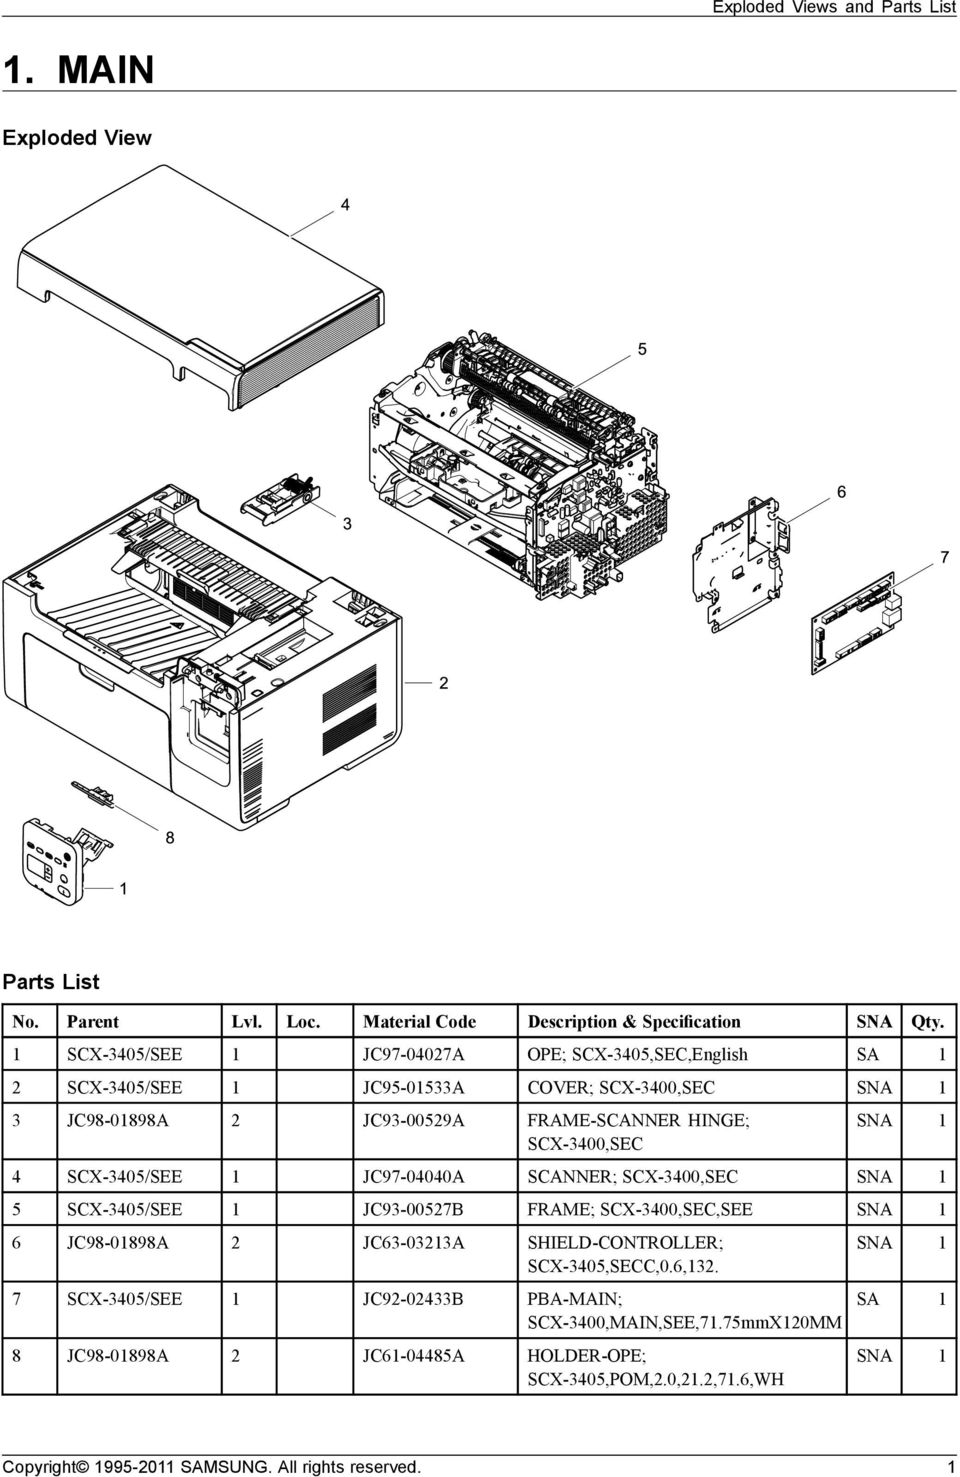 1 Main Exploded View Parts List Pdf Maytag Washer Diagram Group Picture Image By Tag Scx 3400secsee 6 Jc98 01898a 2 Jc63 03213a Shield